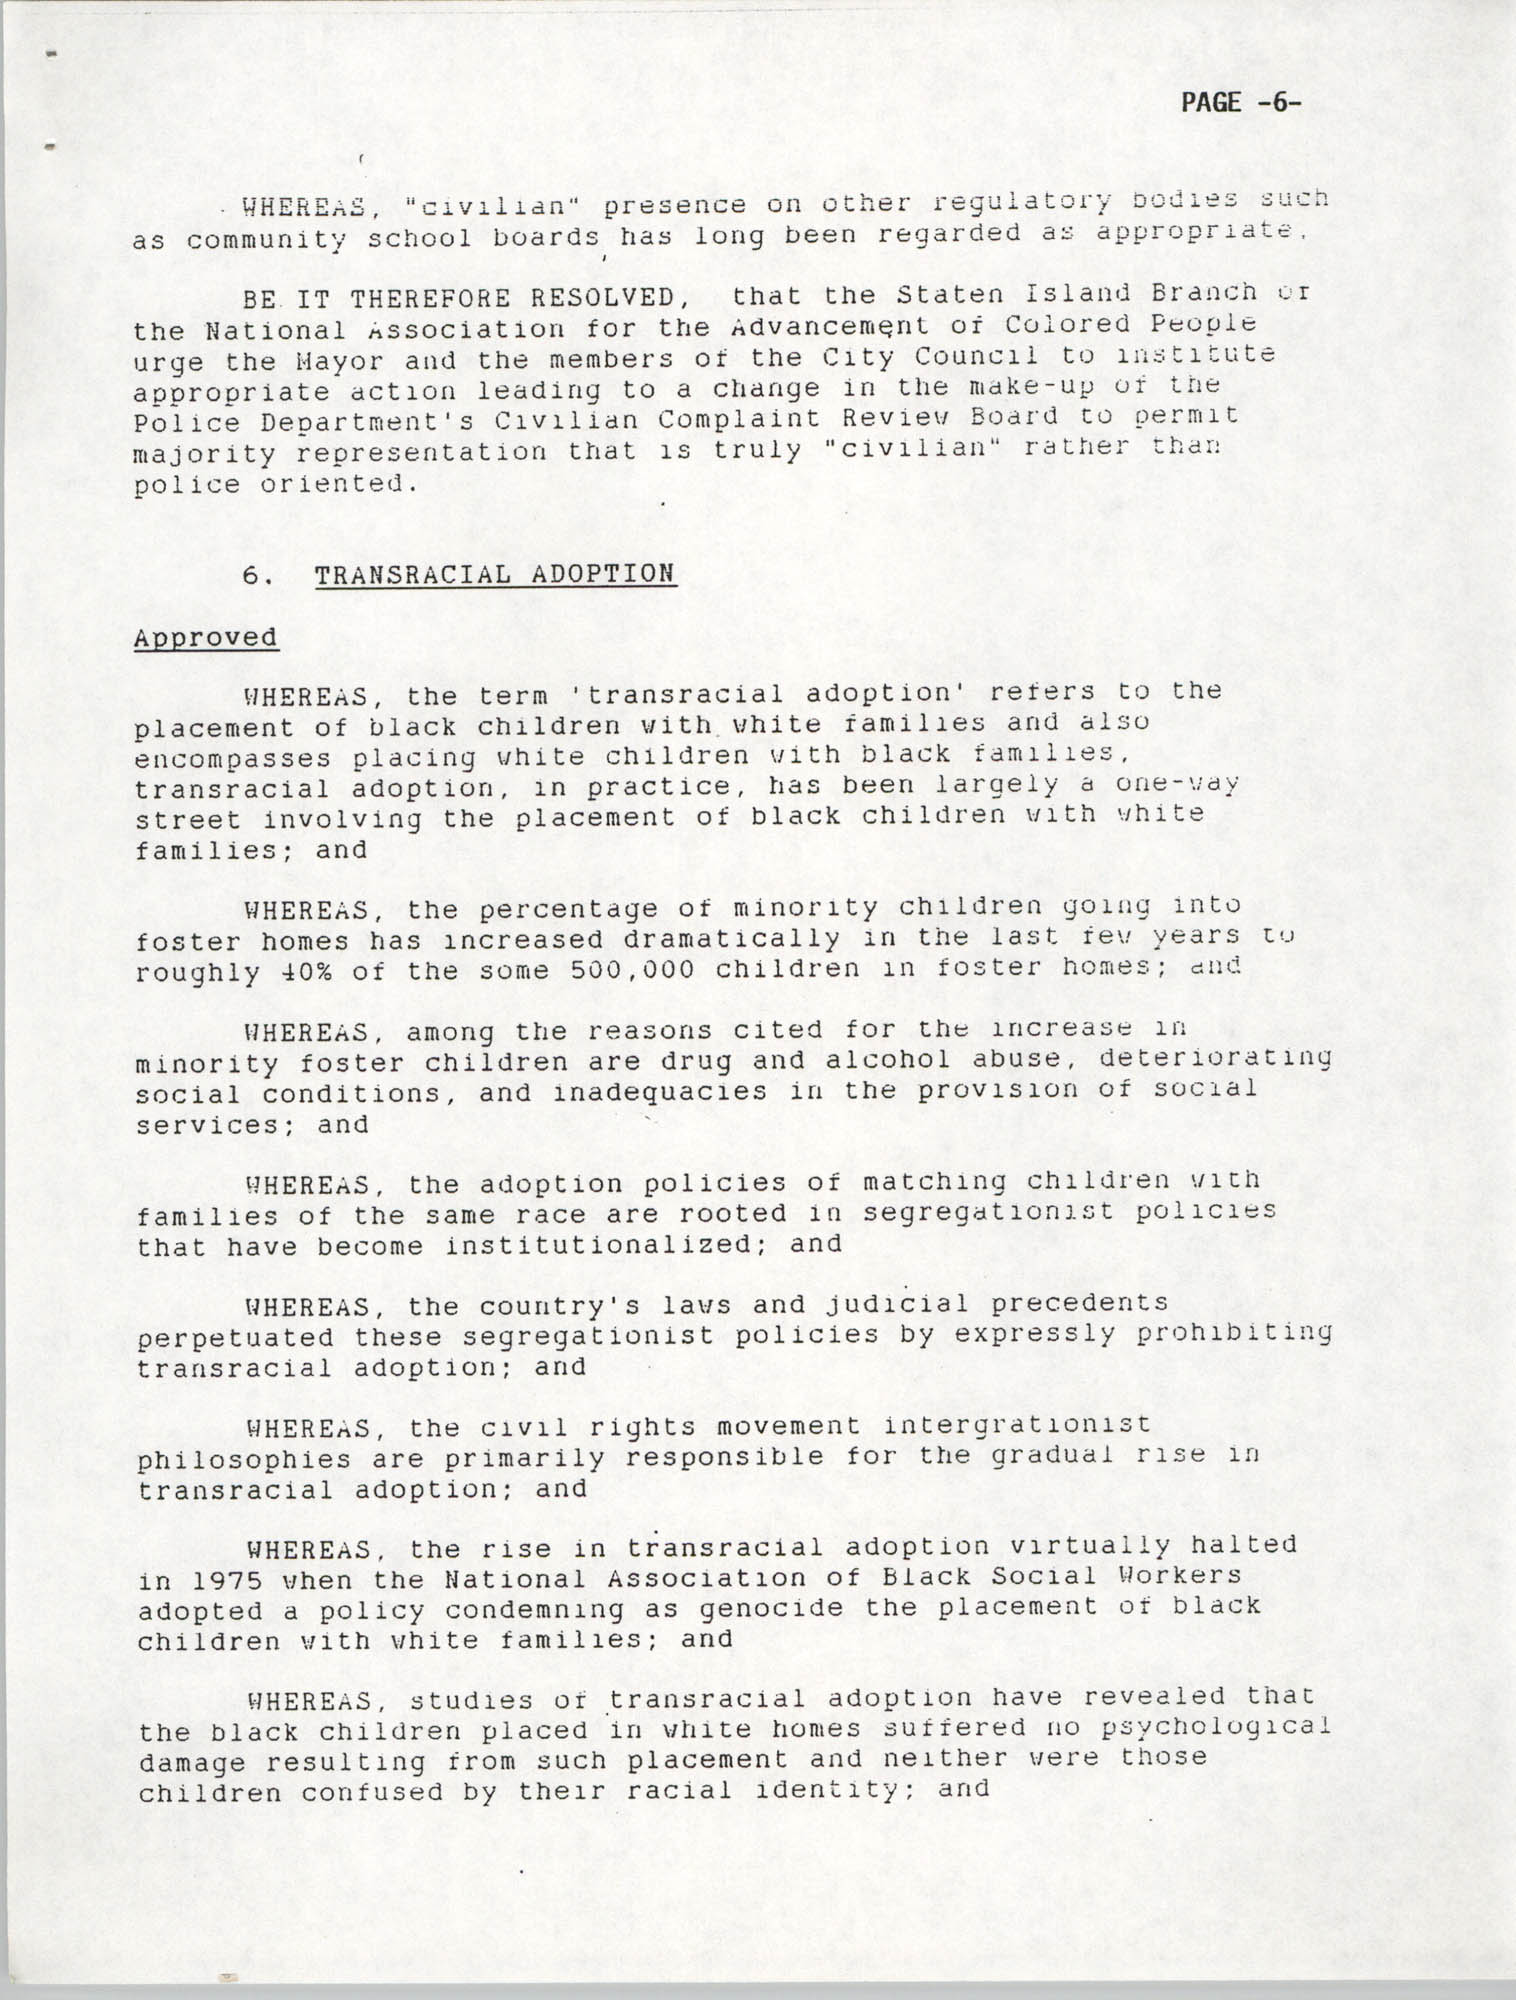 Resolutions Submitted Under Article X, Section 2 of the Constitution of the NAACP, 1992, Page 6